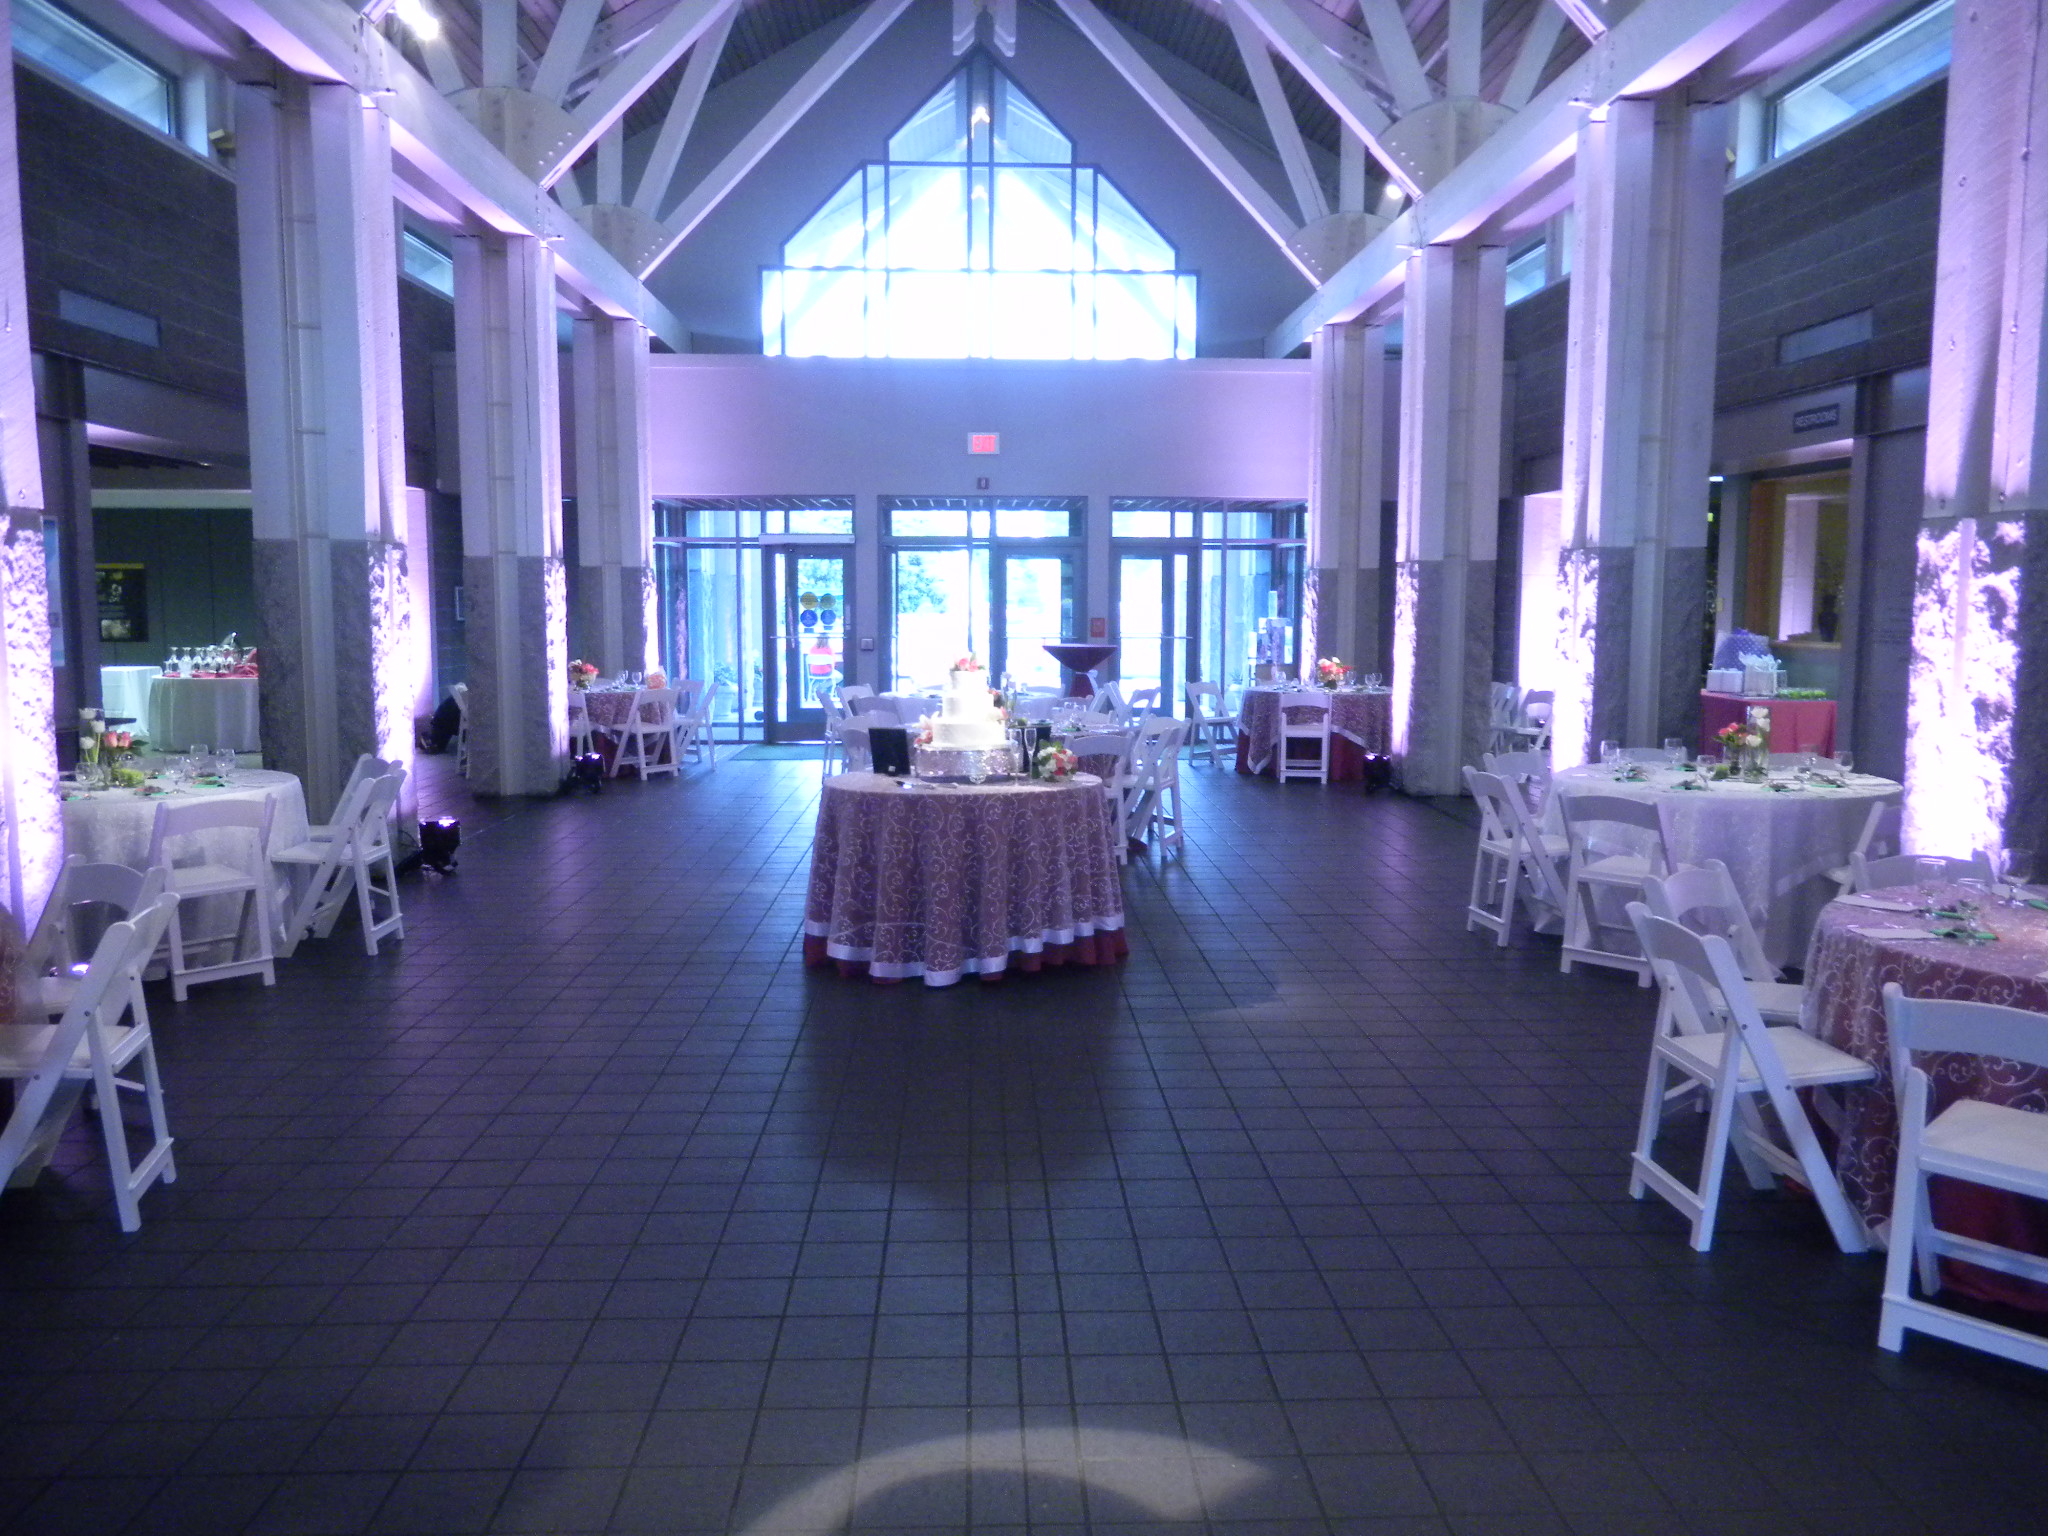 Charmant Norfolk Botanical Gardens Wedding. Spring Weddings Blue Steel Lighting  Design